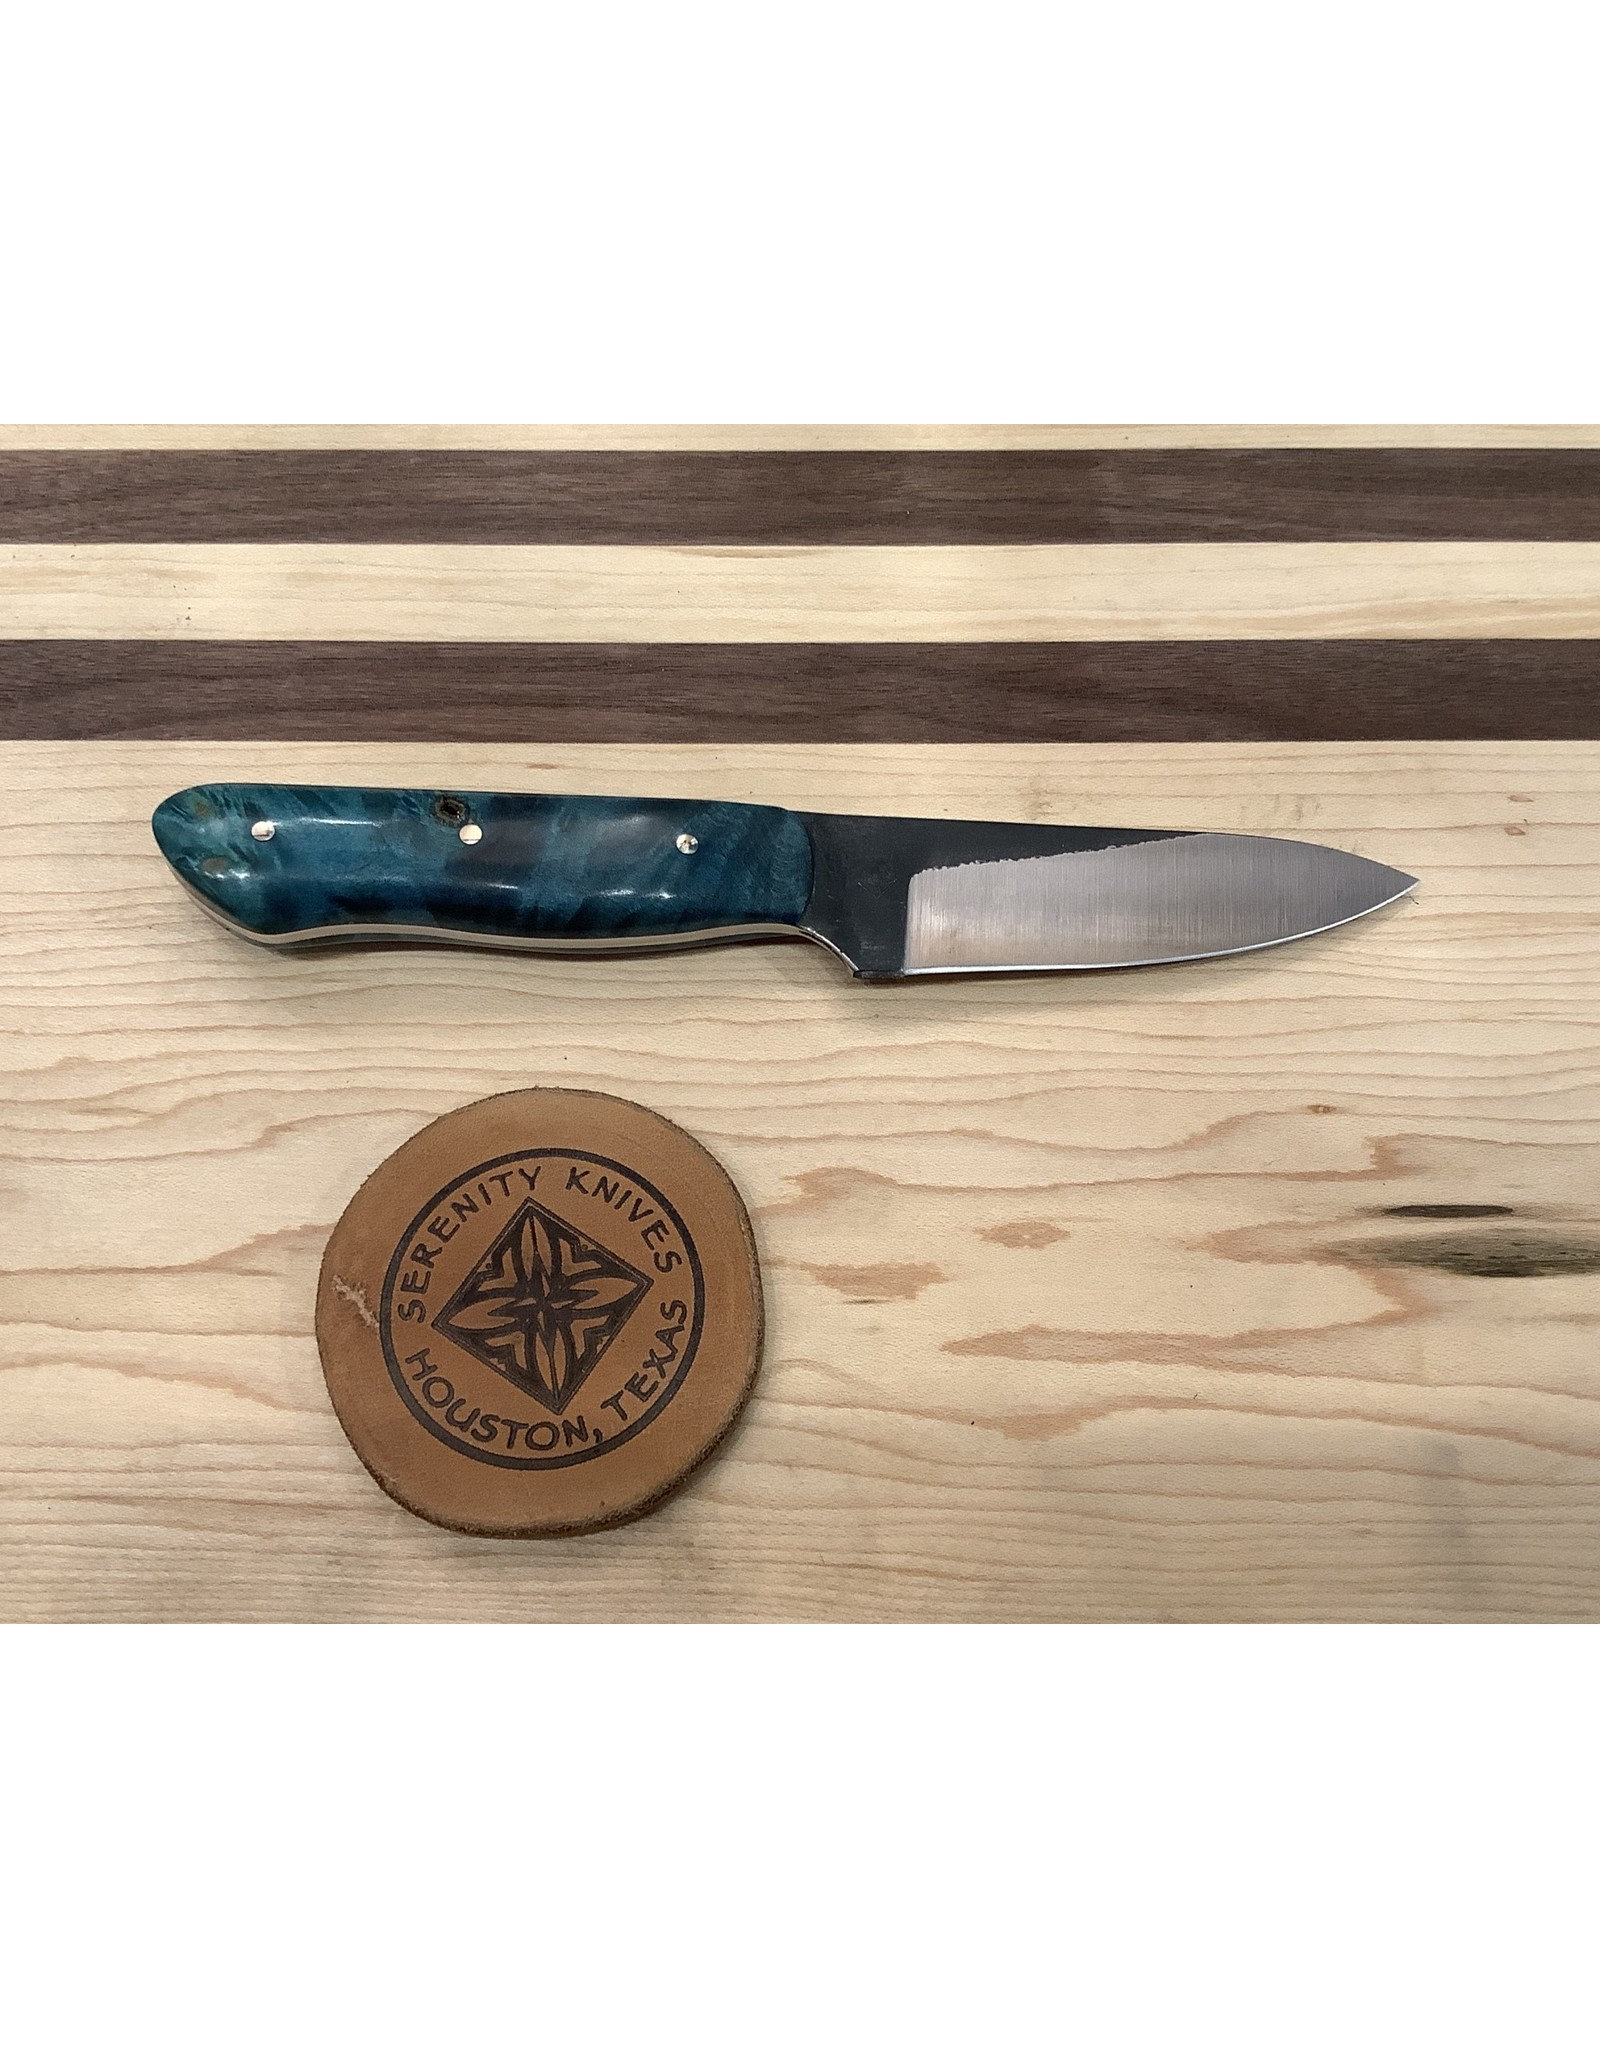 Serenity Paring Knife in CPM154 with Blue Redwood Burl